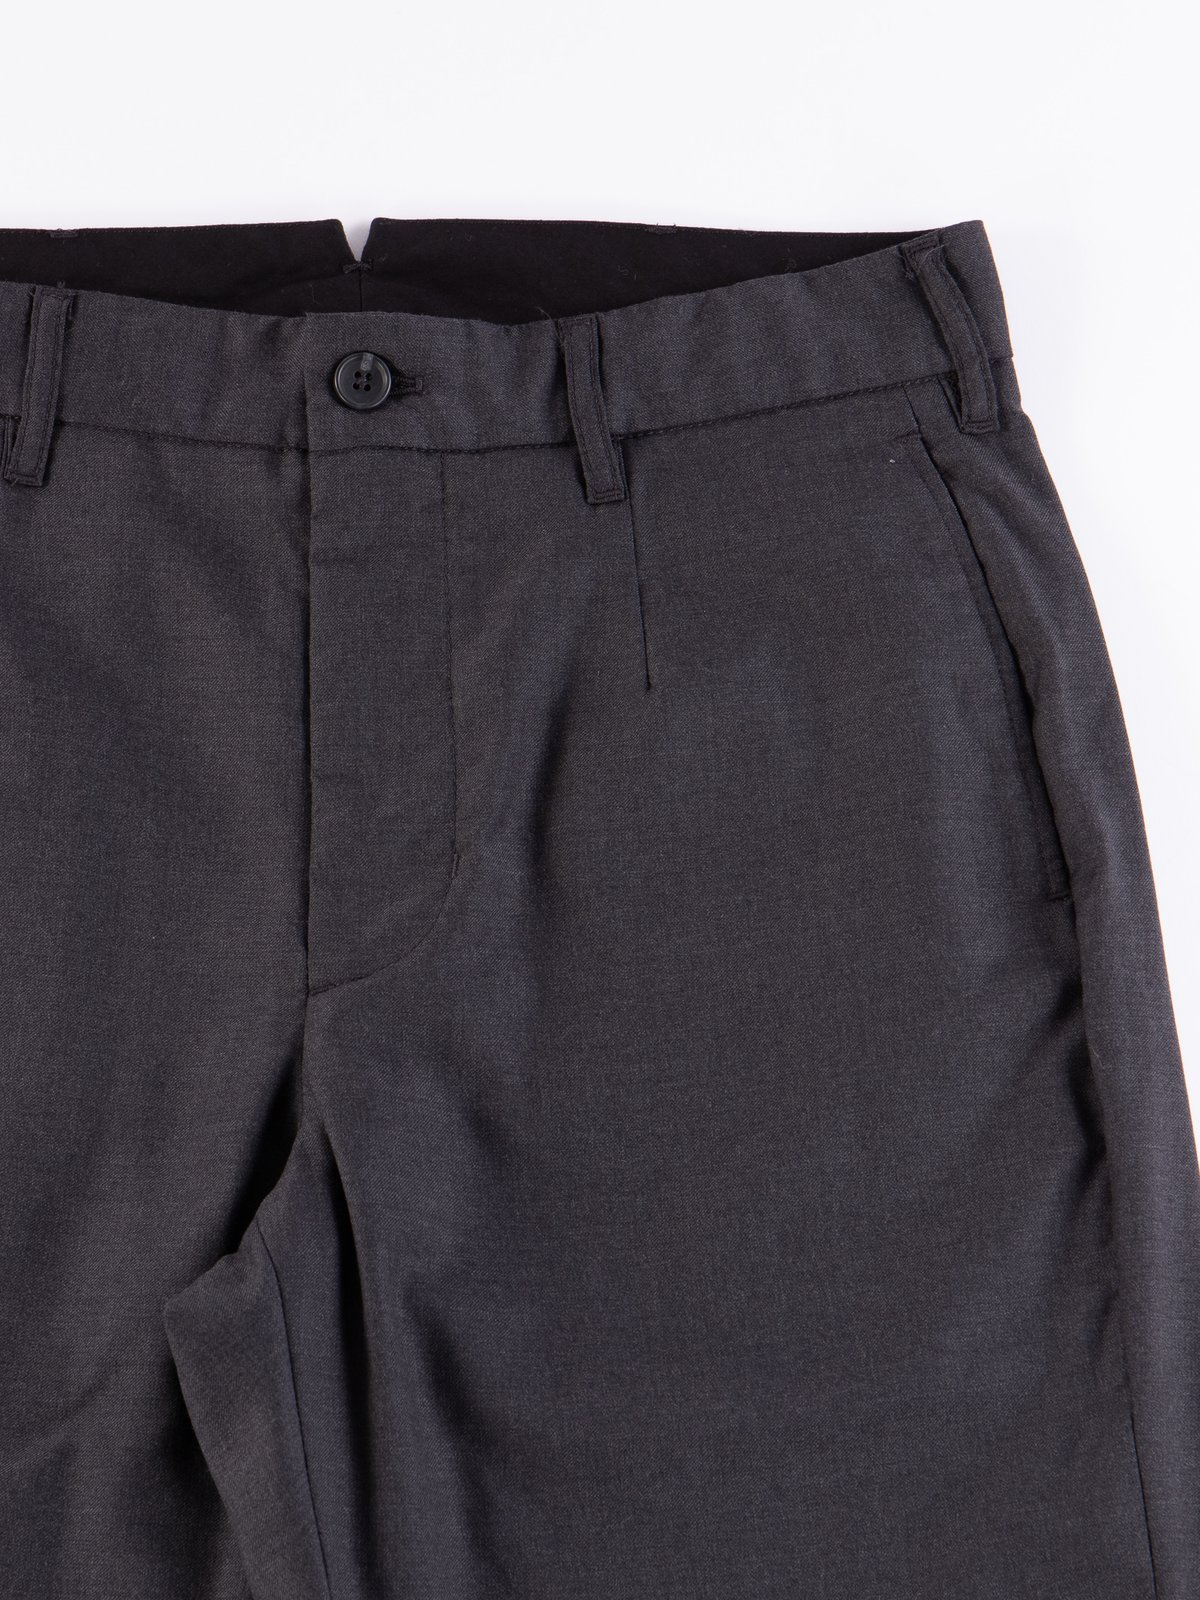 Charcoal Worsted Wool Gabardine Andover Pant - Image 4